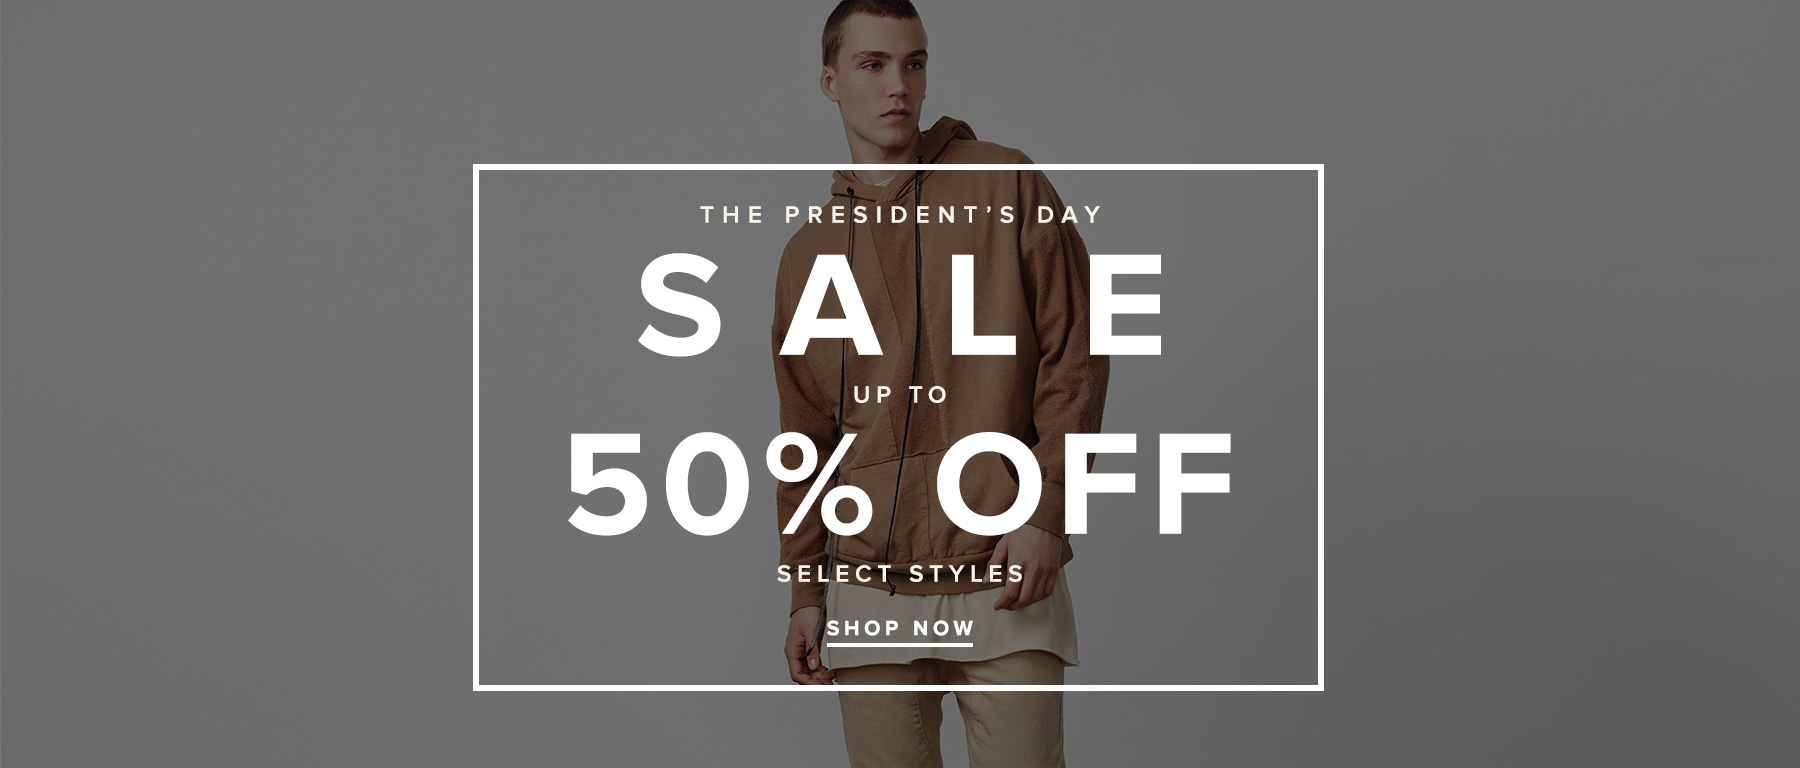 THE PRESIDENTS DAY SALE